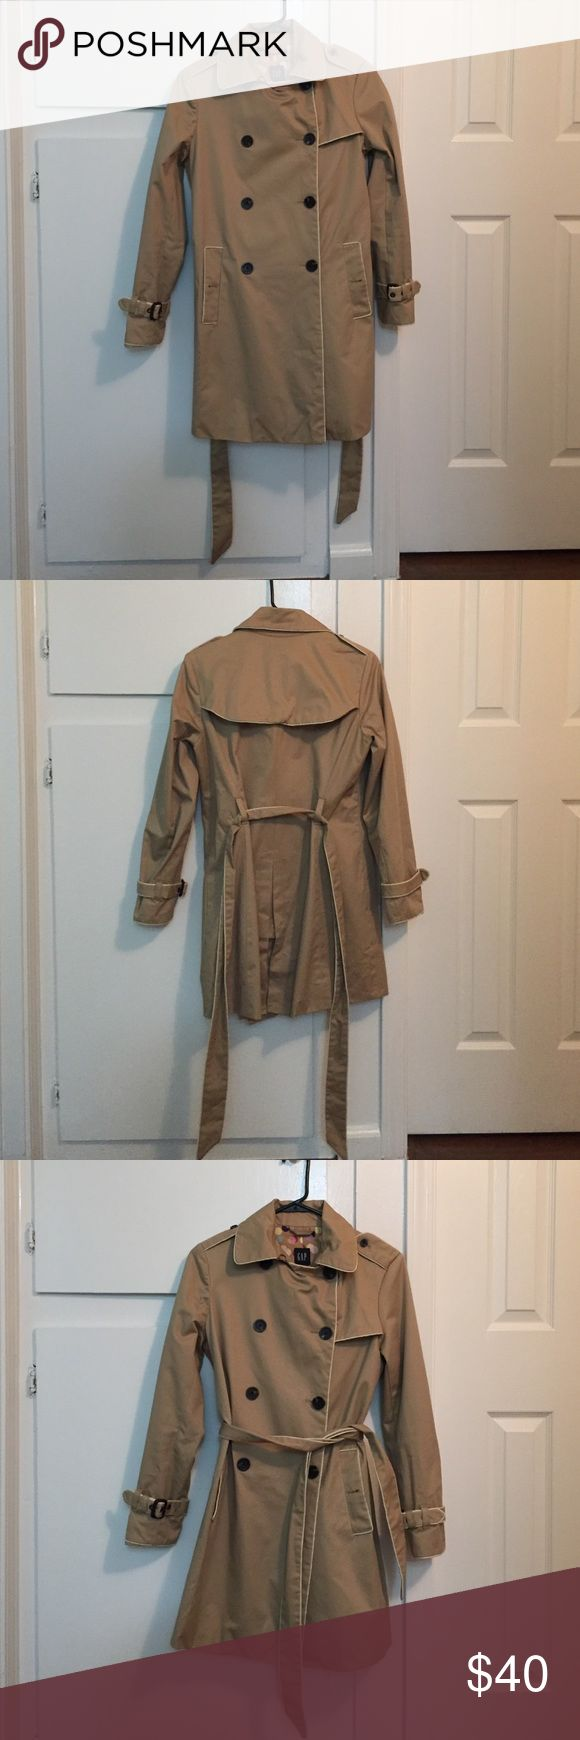 Gap Light Brown Trench Coat Gap trench coat in light brown with lining. Size: XS. Condition: like new. GAP Jackets & Coats Trench Coats